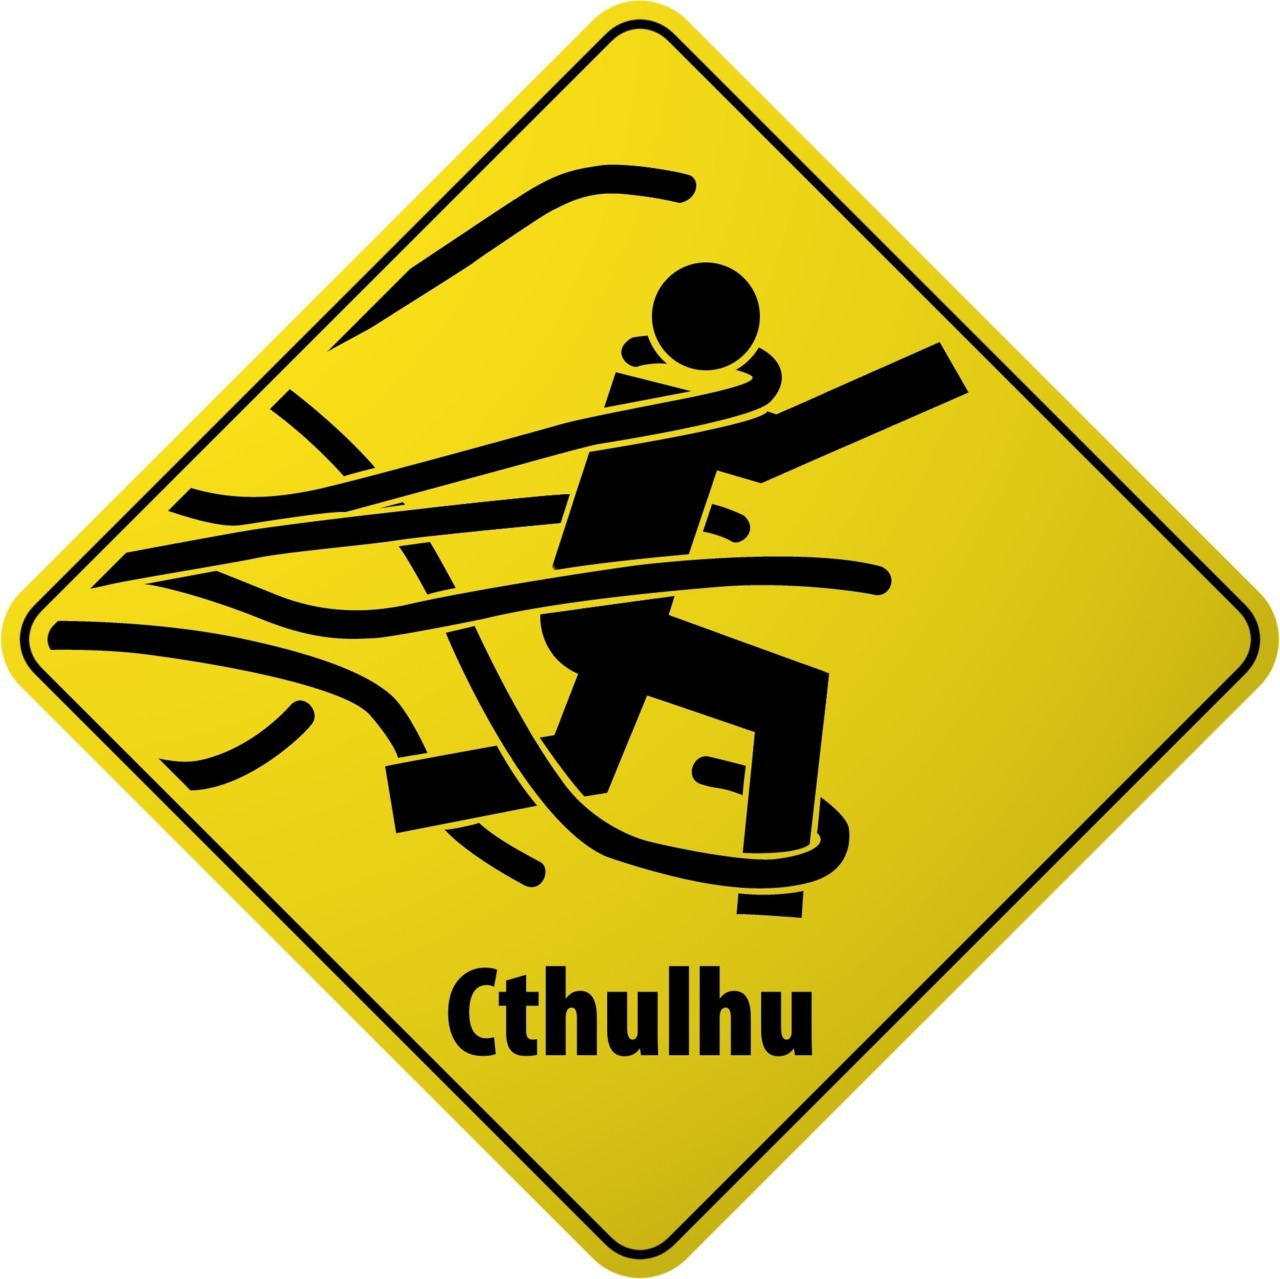 WARNING! Cthulhu ahead.